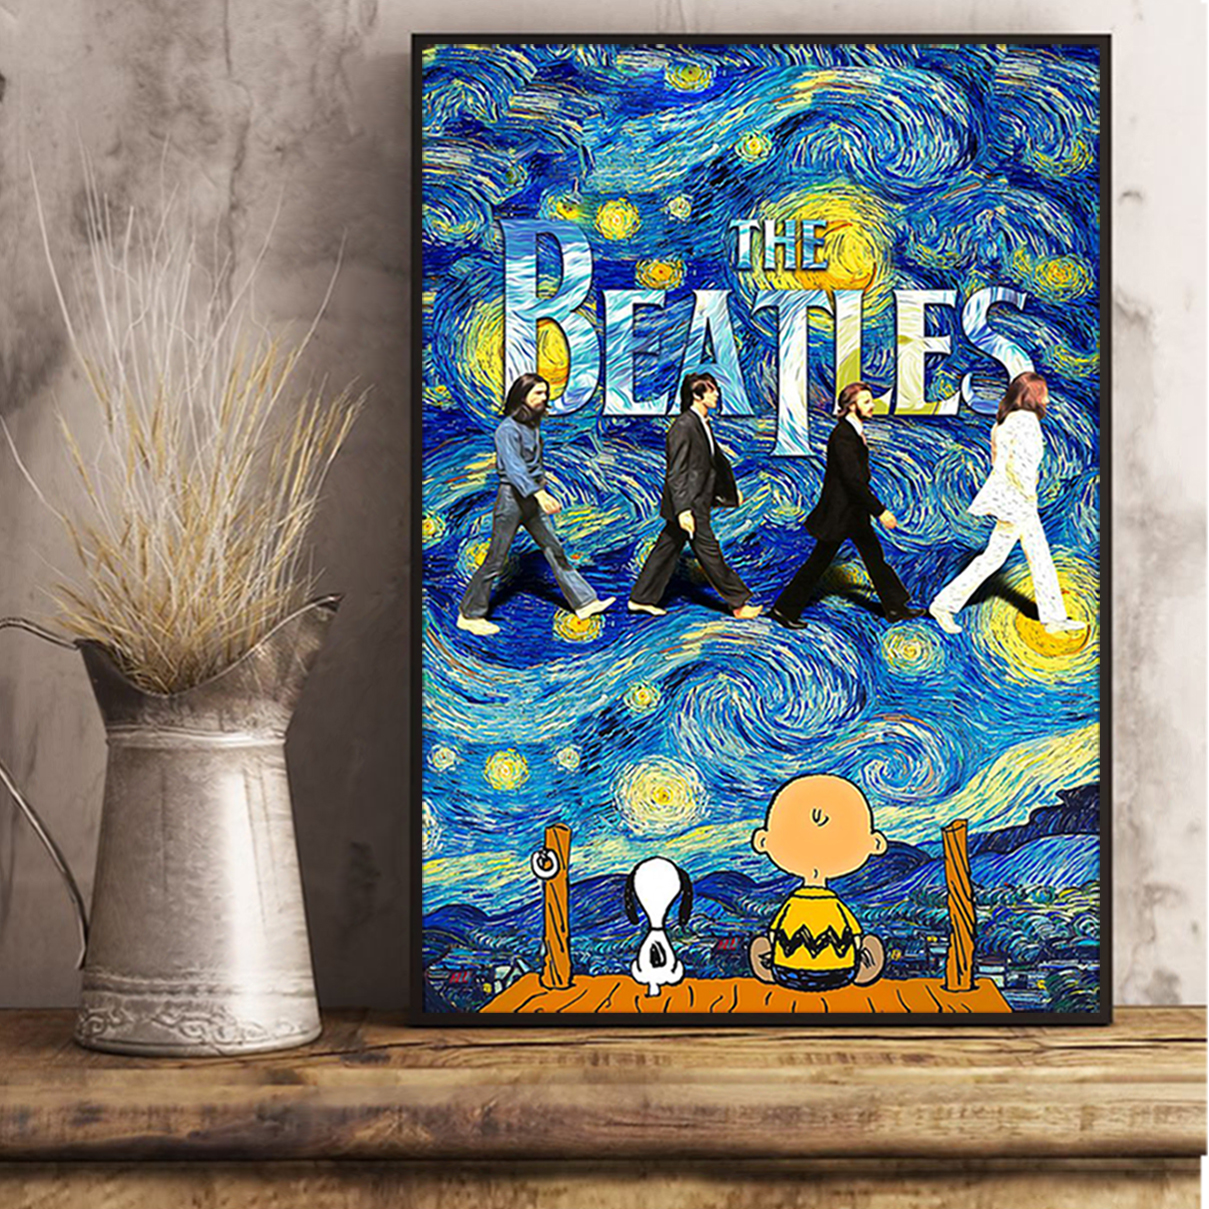 Snoopy charlie brown the beatles starry night van gogh poster A2